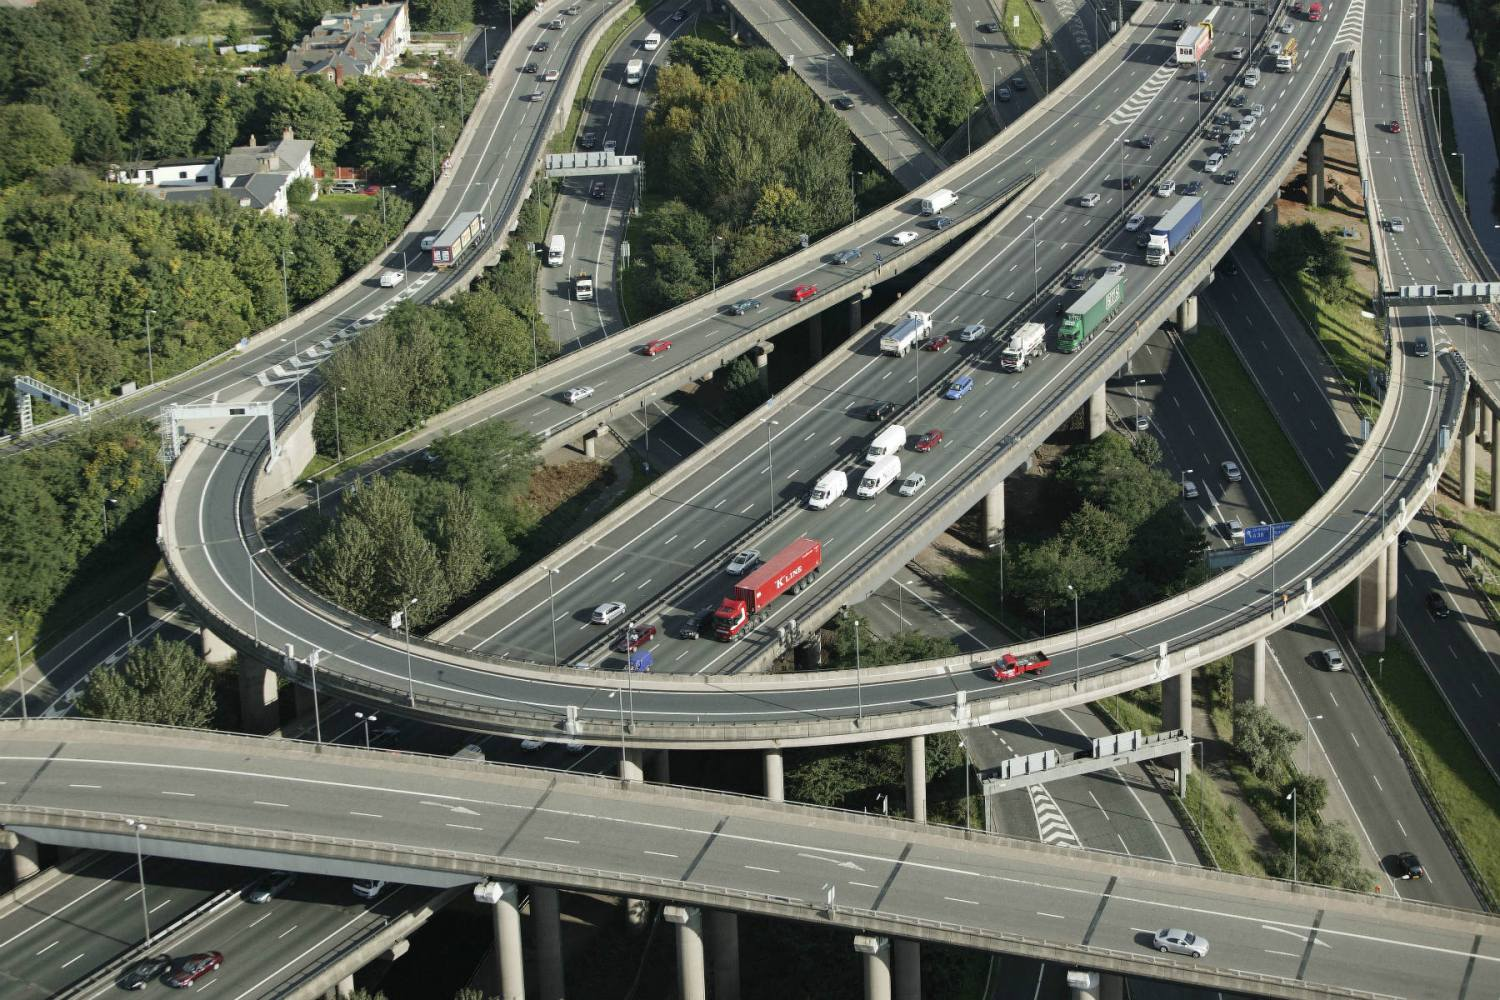 Anti-pollution tunnels on UK motorways not the answer, says RAC